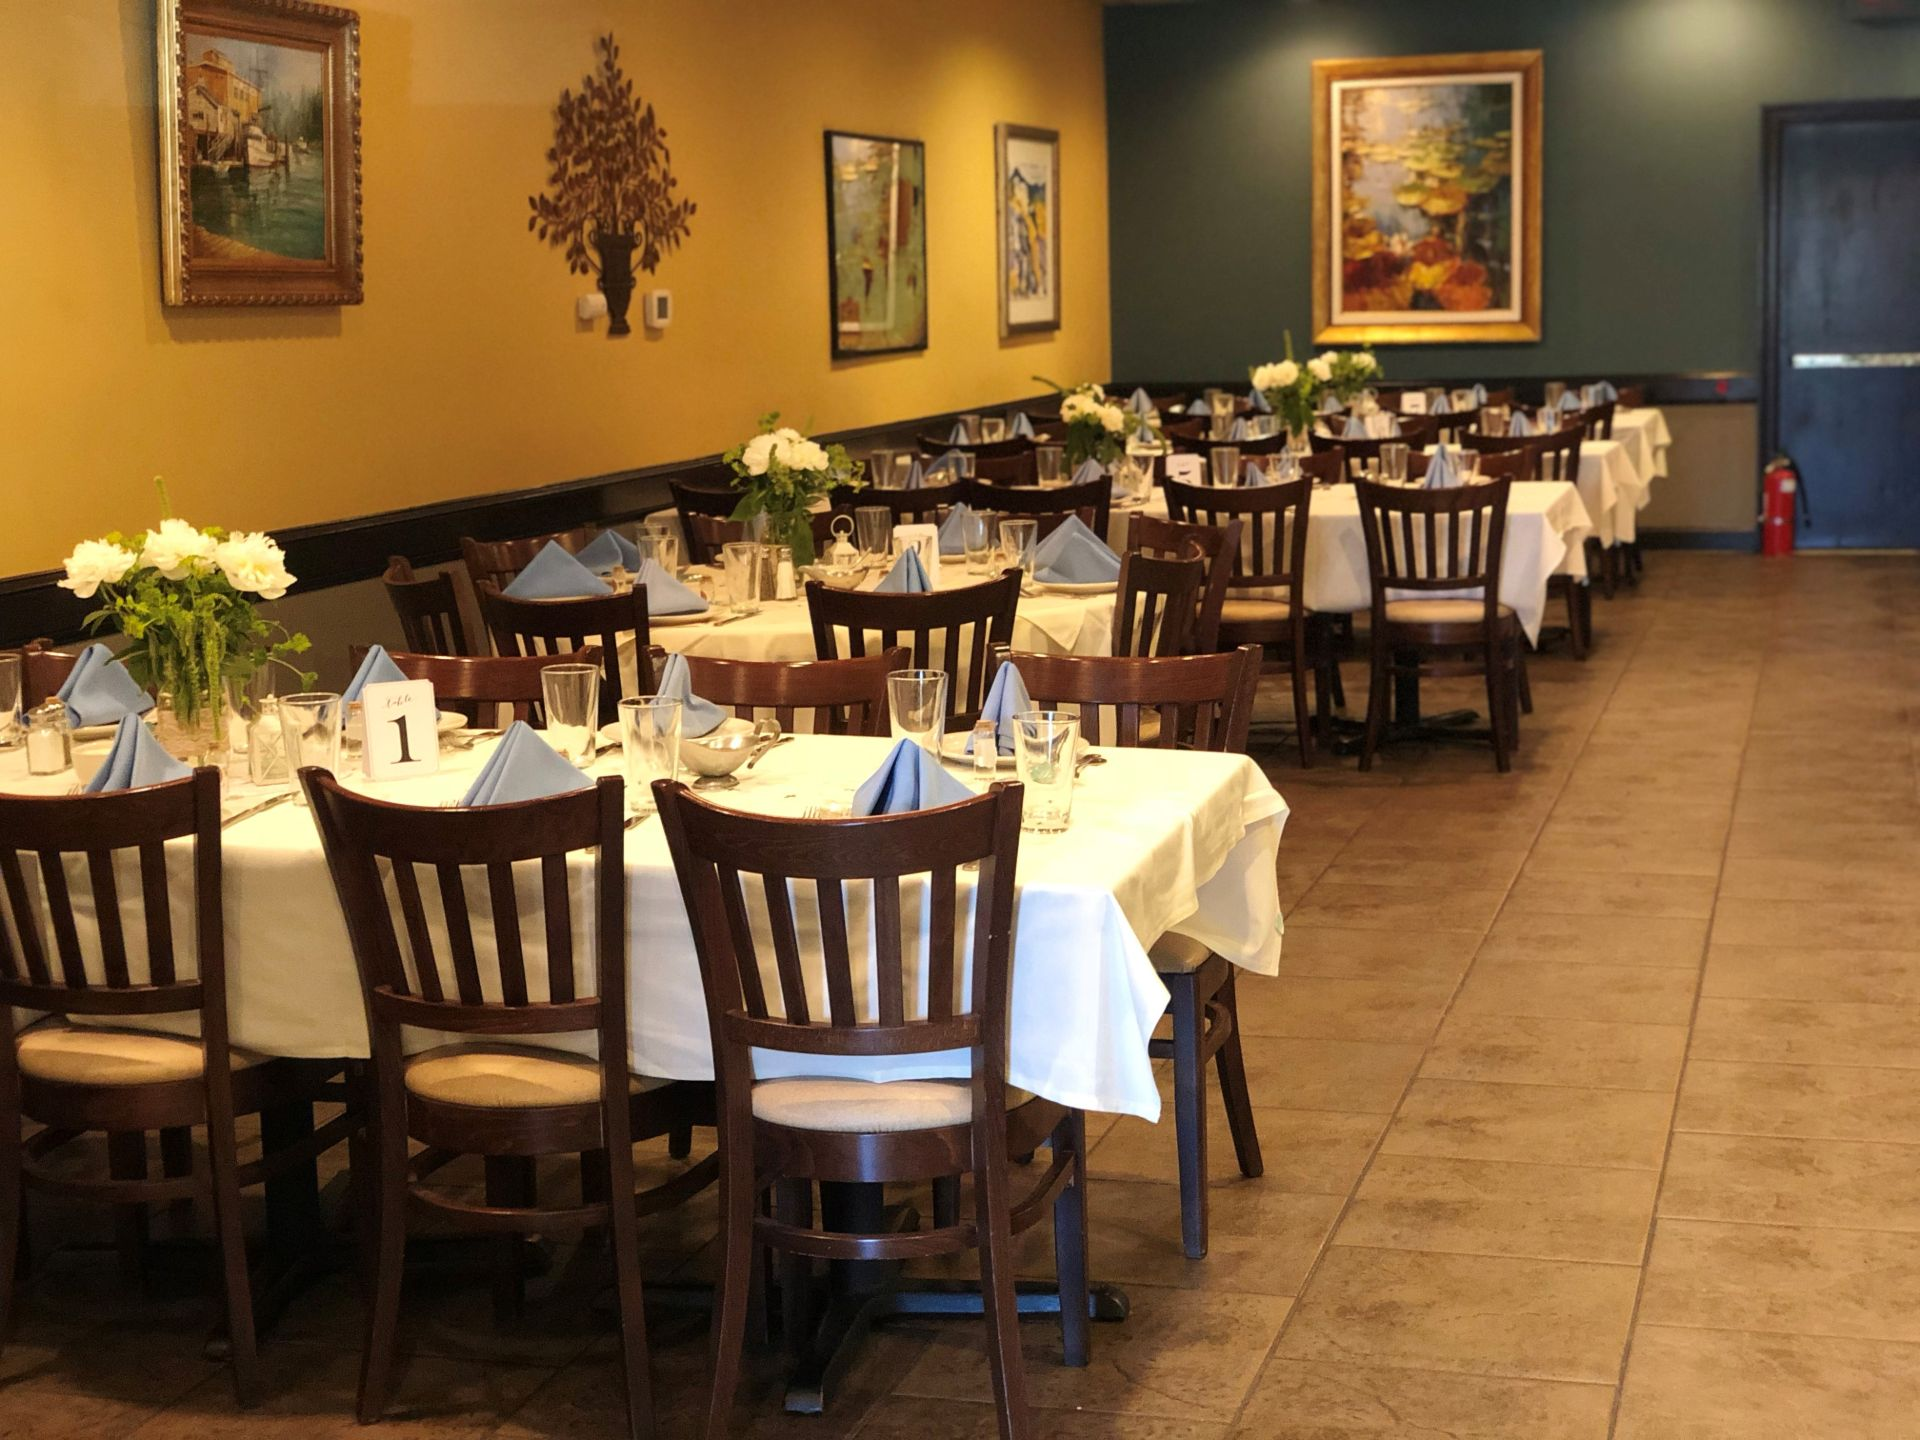 Interior dining area with tables set with white table cloth and place-settings and various paintings on the walls